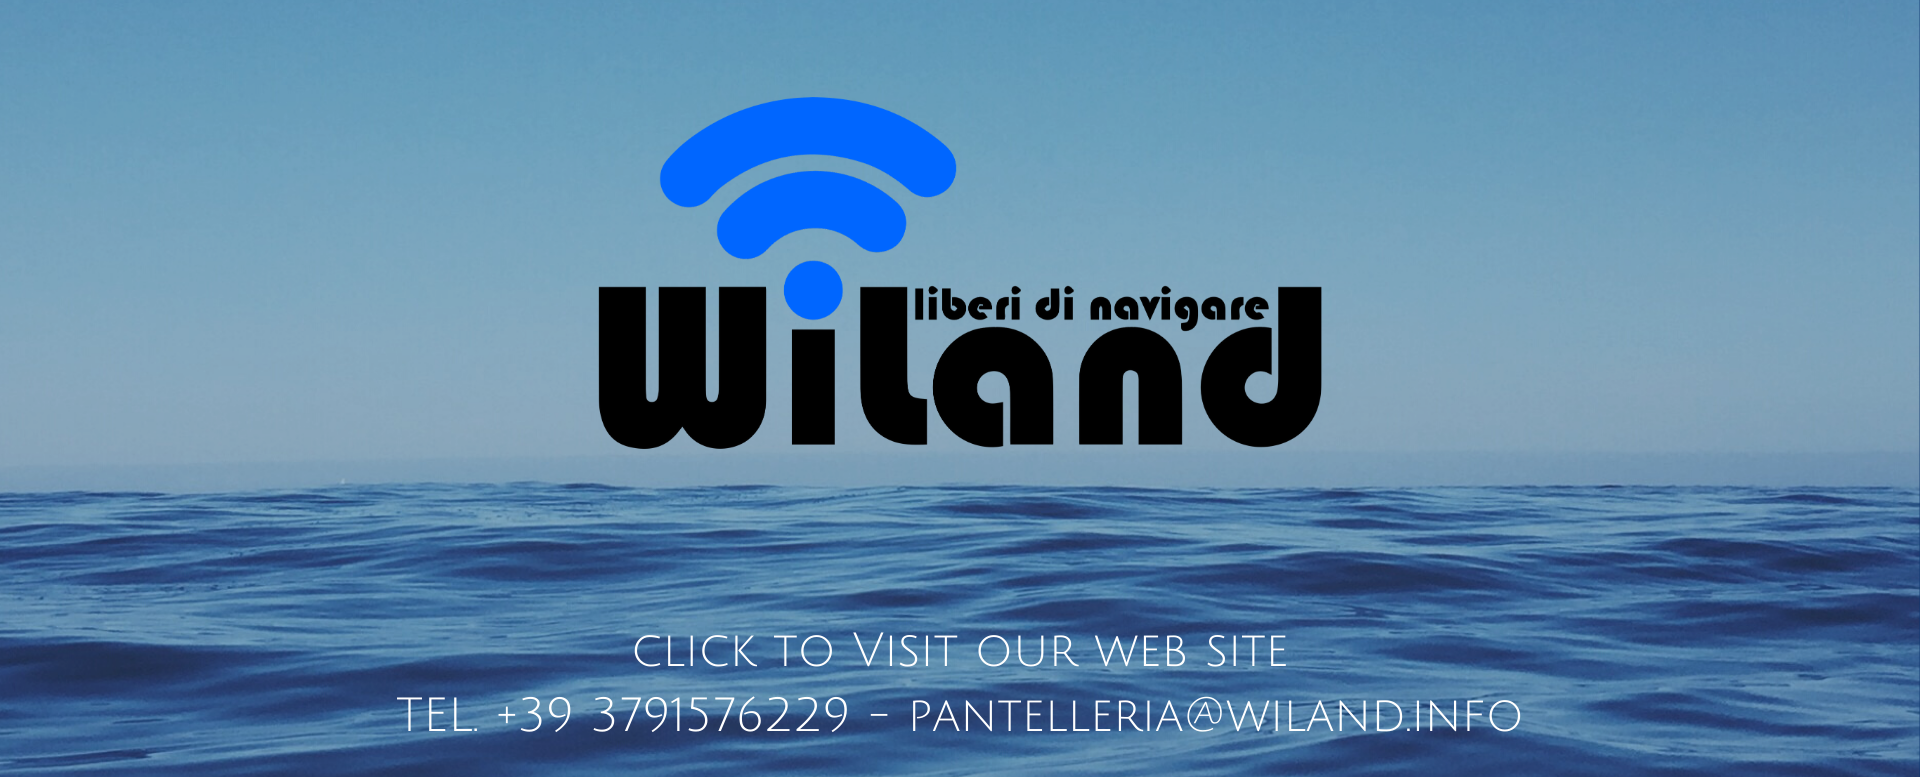 click to Visit our web site +39 3791576229 - pantelleria@wiland.info